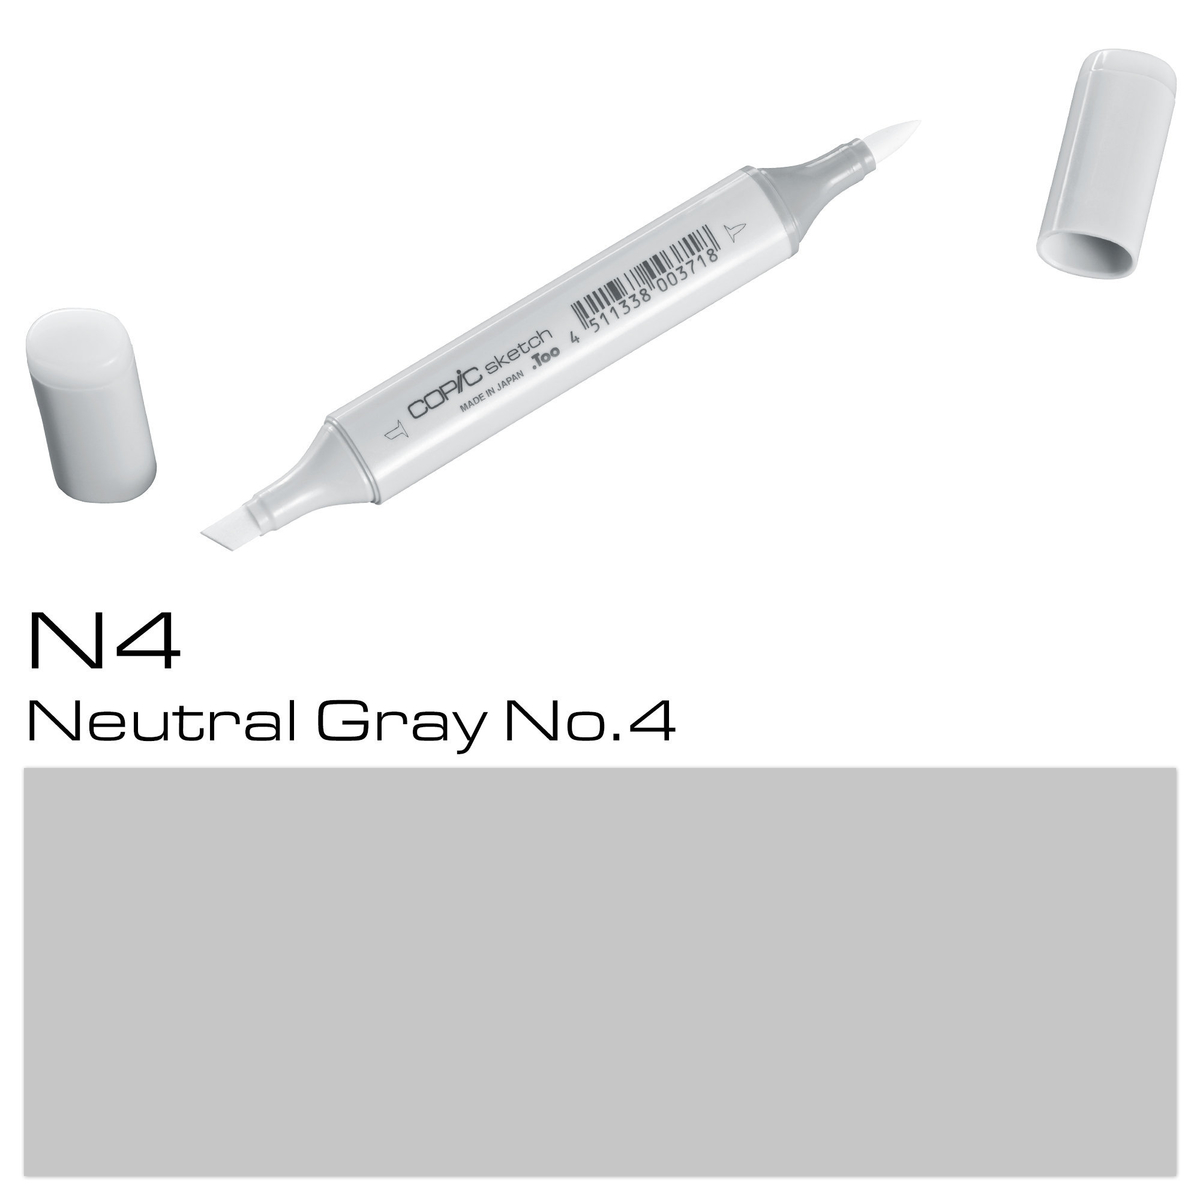 Copic Sketch N 4 neutral gray